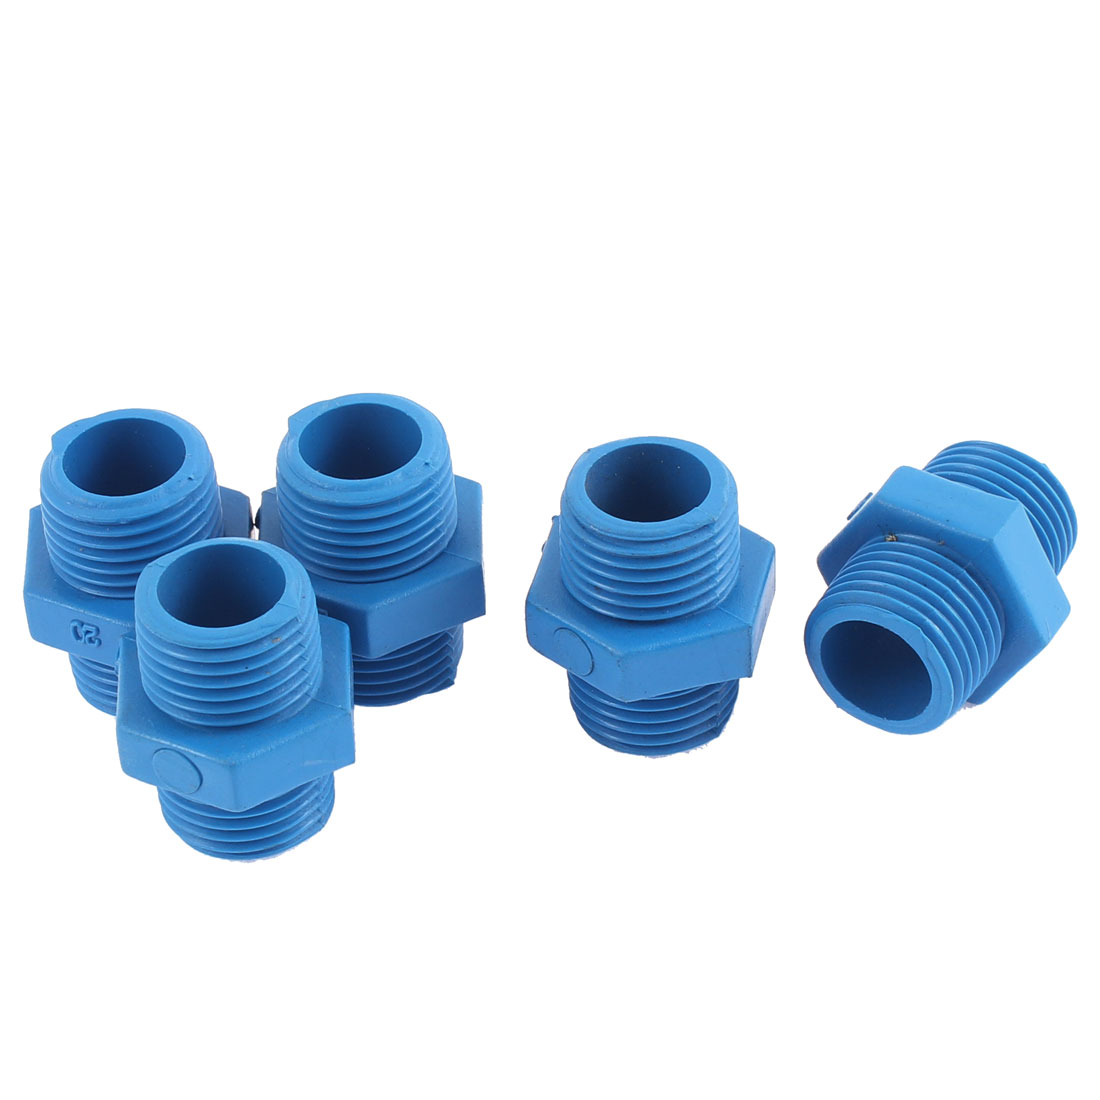 20mm 1/2BSP Dual Male Thread Water Pipe Hose Fittings 5PCS